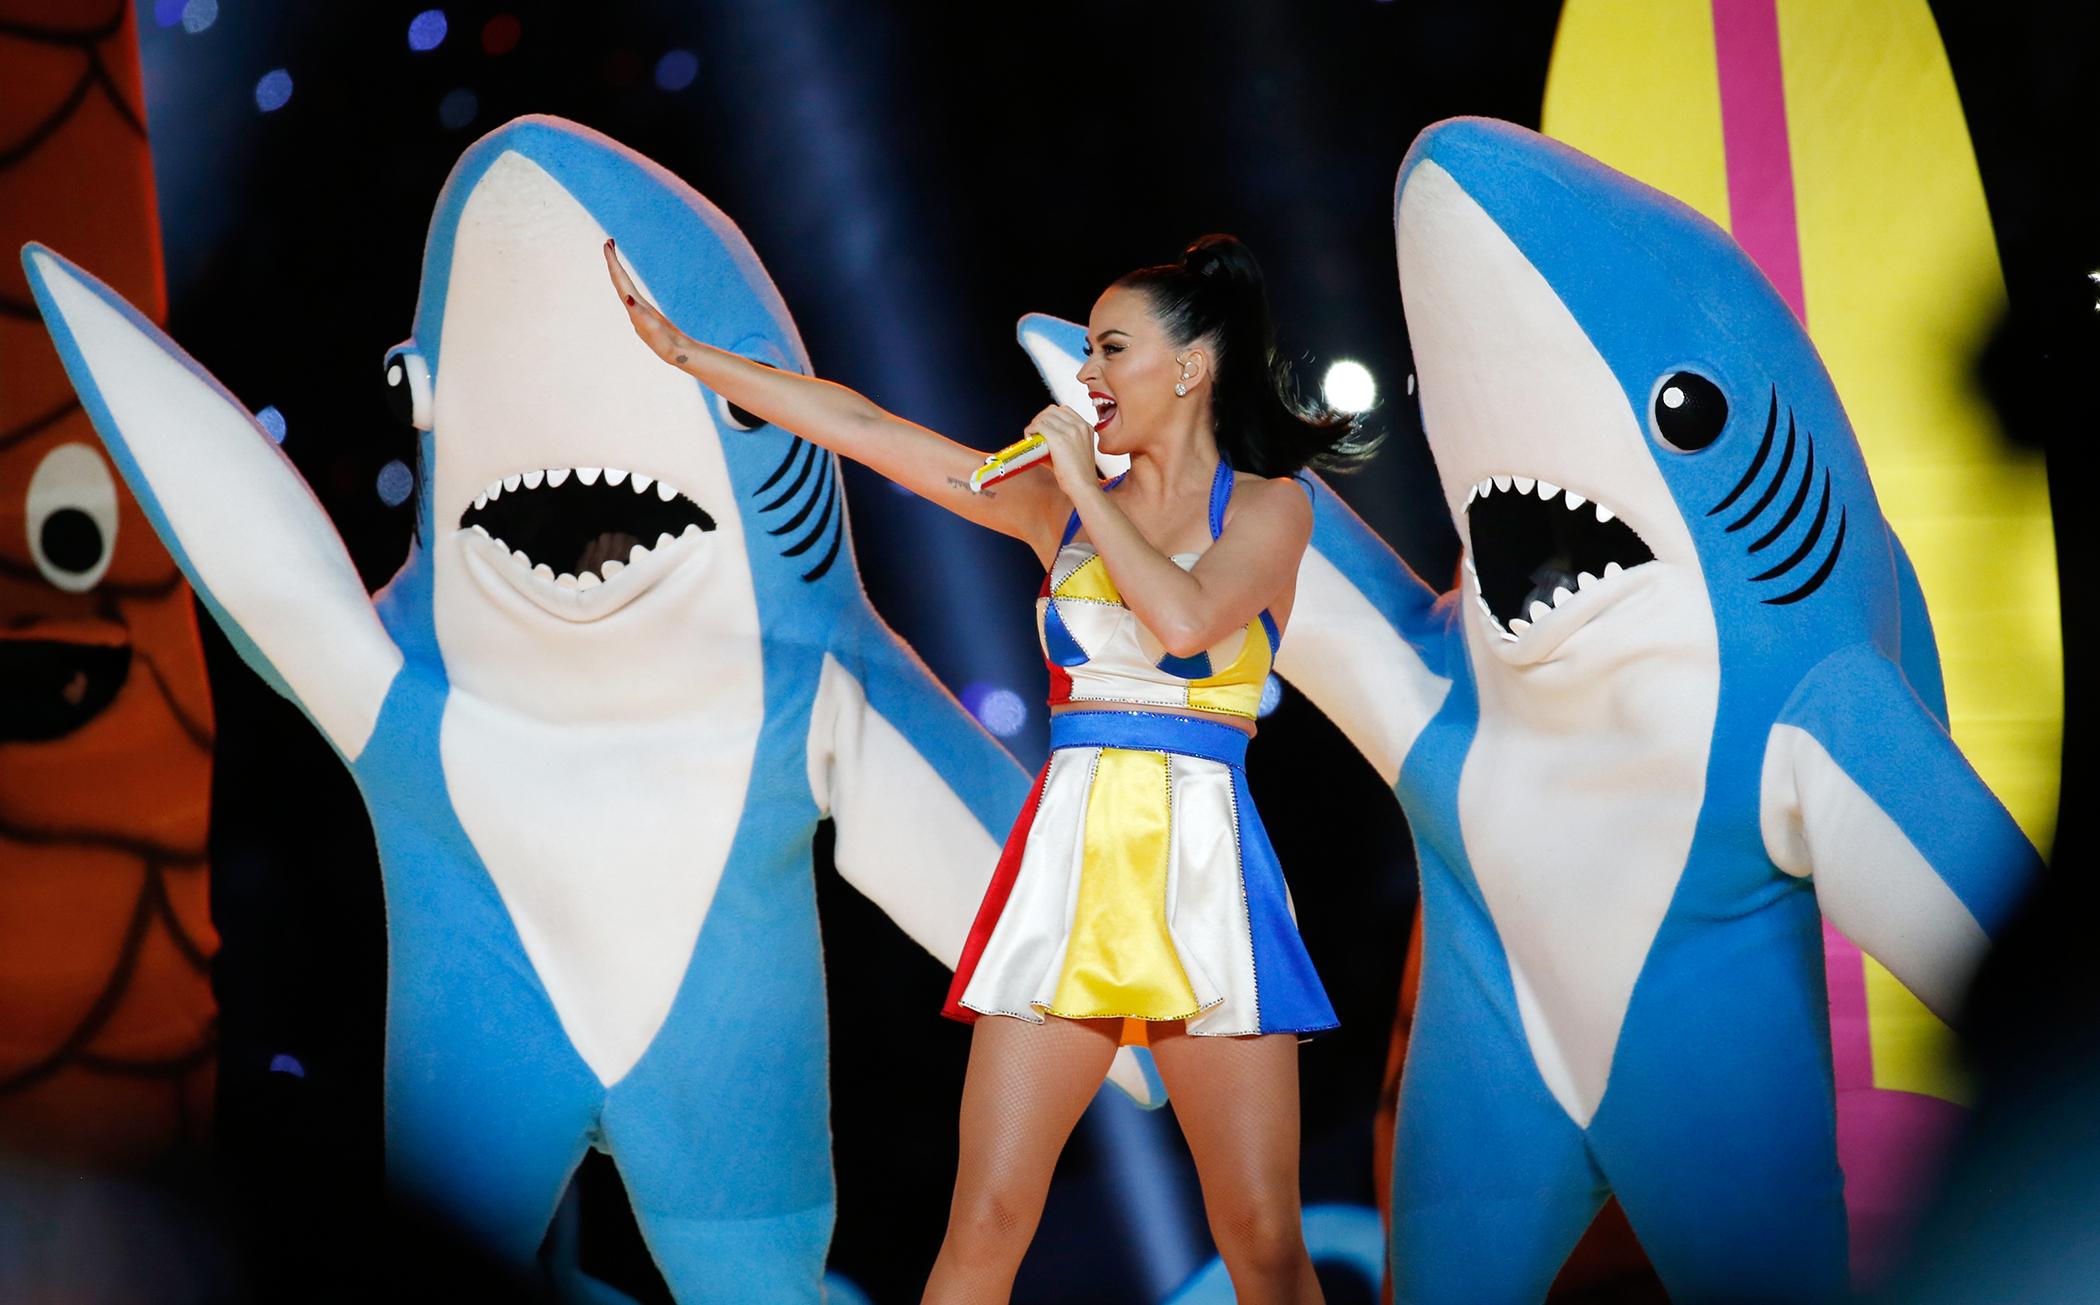 Katy Perry performs during the halftime show at the NFL Super Bowl XLIX football game between the Seattle Seahawks and the New England Patriots in Glendale, Arizona, February 1, 2015.